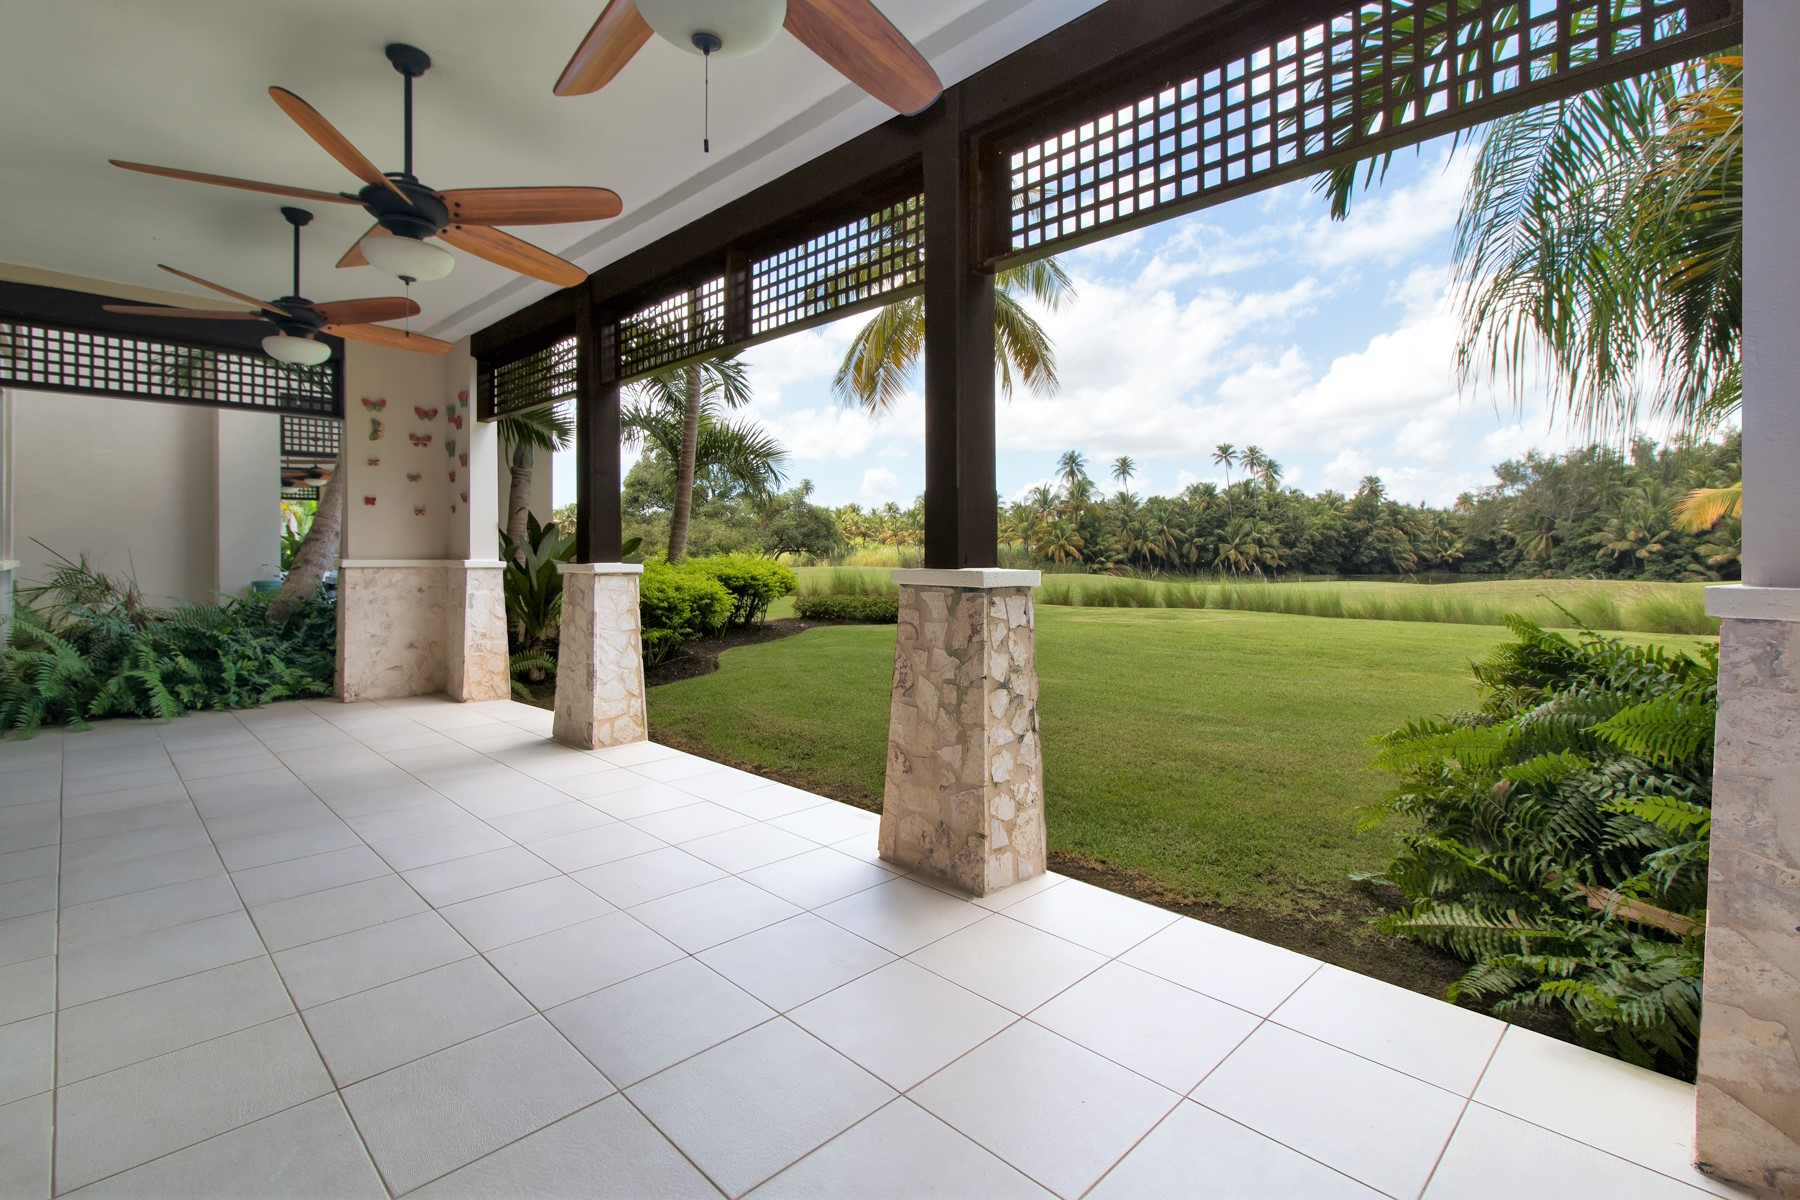 Additional photo for property listing at Ground Level Villa at Las Verandas 10182 Las Verandas State Road 187, Km. 4.2 St Regis, Bahia Beach Bahia Beach, Puerto Rico 00745 Puerto Rico